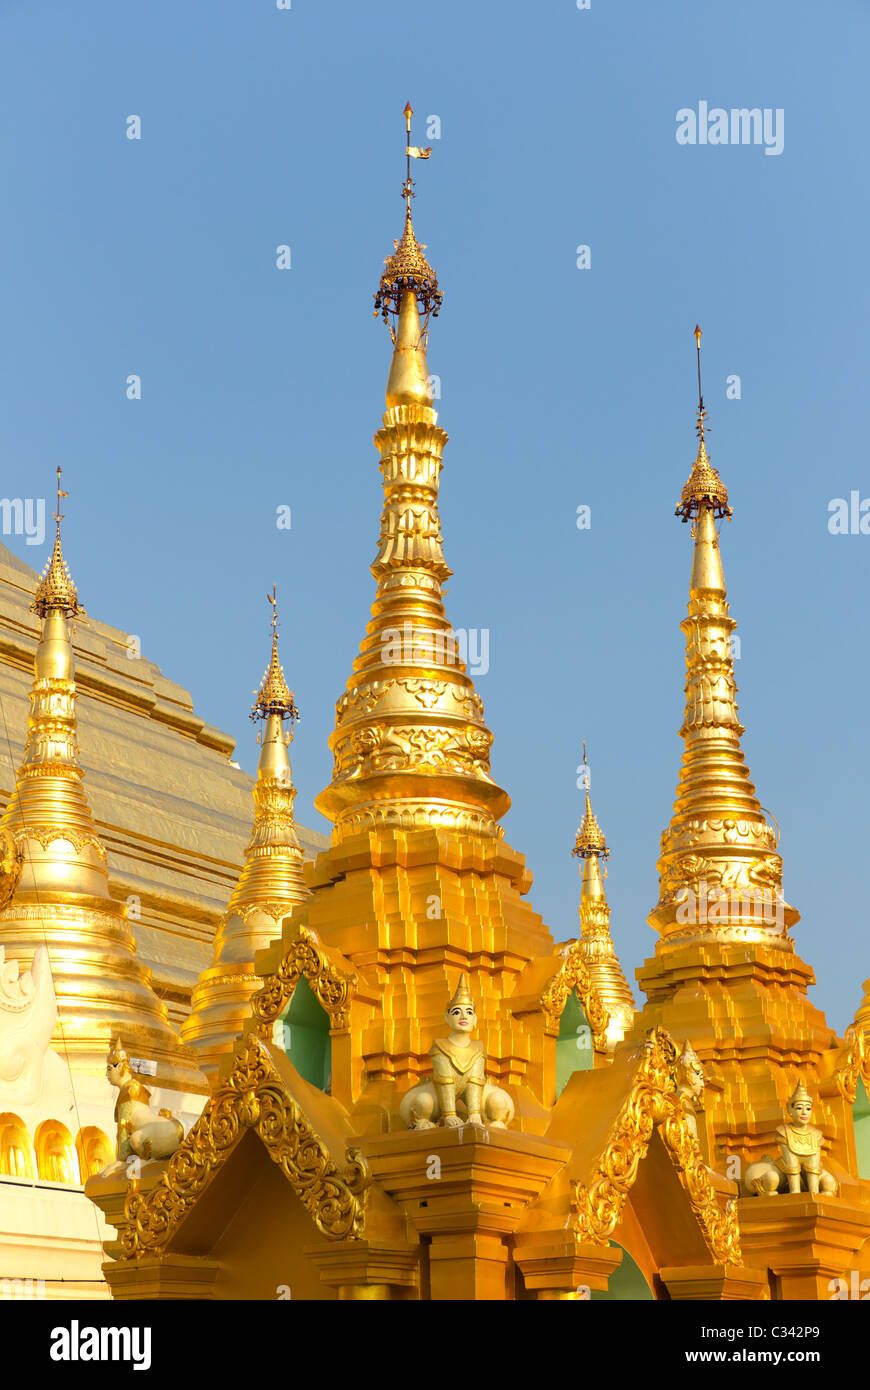 Mythical Creatures on Gold Shrines at the Buddhist Temple of the Shwedagon Paya or Pagoda in Yangon, Myanmar, Formerly - Stock Image